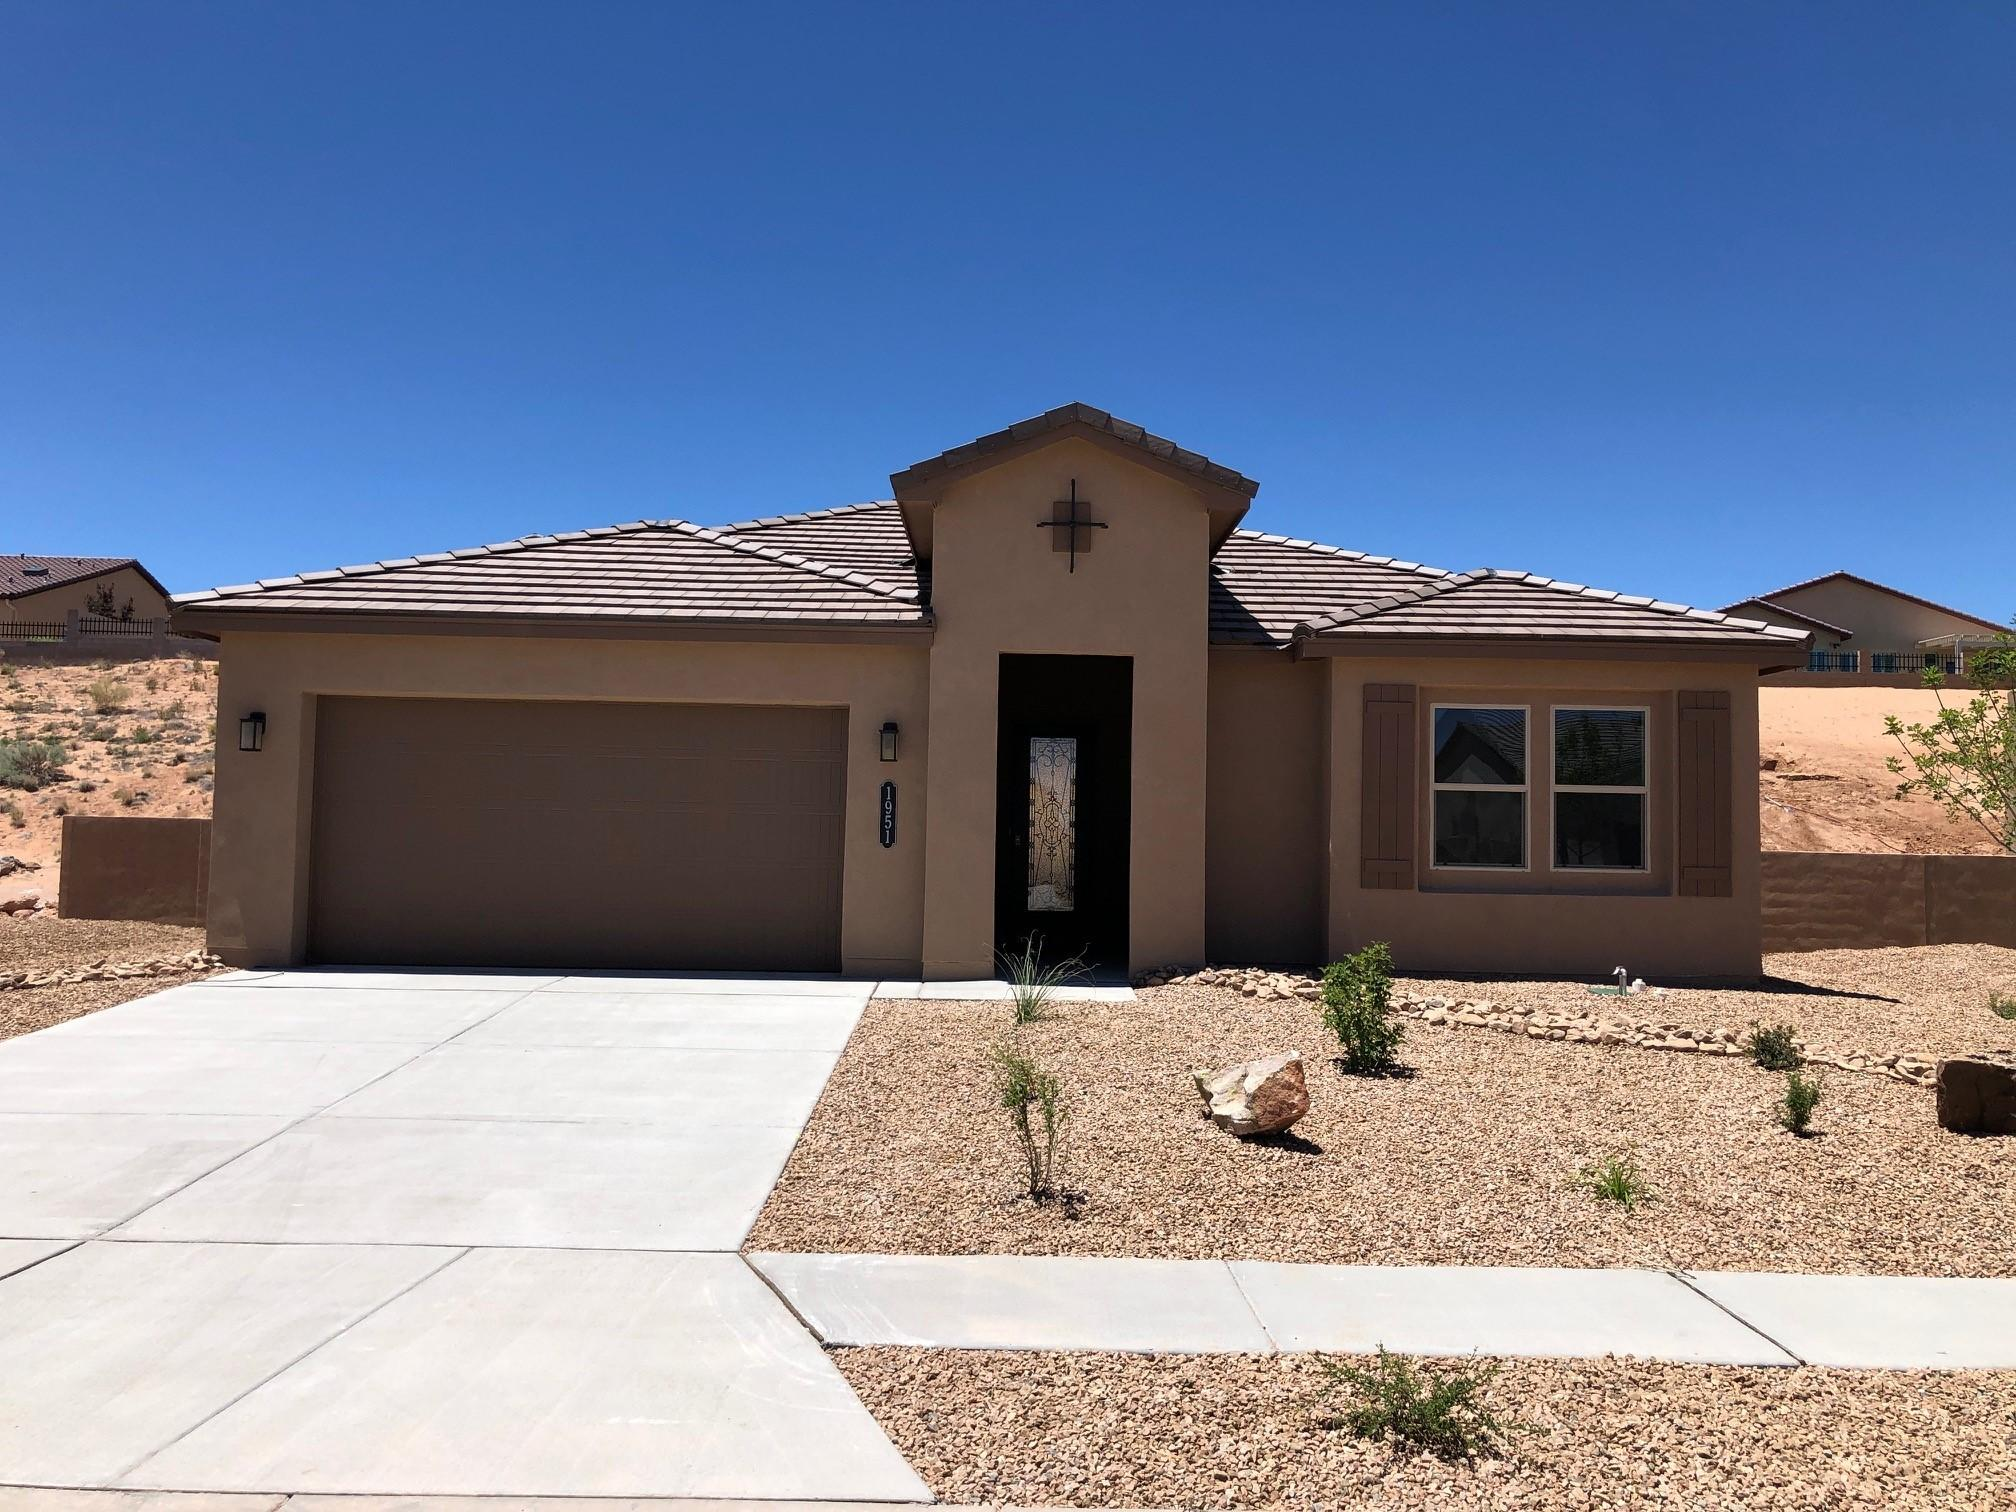 This beautiful 1746 floorplan sits on an over-sized, 85 foot lot at The Peaks in fabulous Mariposa. The open living area has lots of natural light, and is an entertainers delight. Kitchen has granite counters and island. Whirlpool stainless appliances include: 5-burner cooktop, vent, dishwasher and built-in oven and microwave. New Mexico Green Built And a SMART HOME. Enjoy the lifestyle of a Private Community Center that offers indoor and outdoor pools, parks, fitness center, full time activity director, and miles of hiking/biking trails. It's all about Lifestyle at beautiful Mariposa.